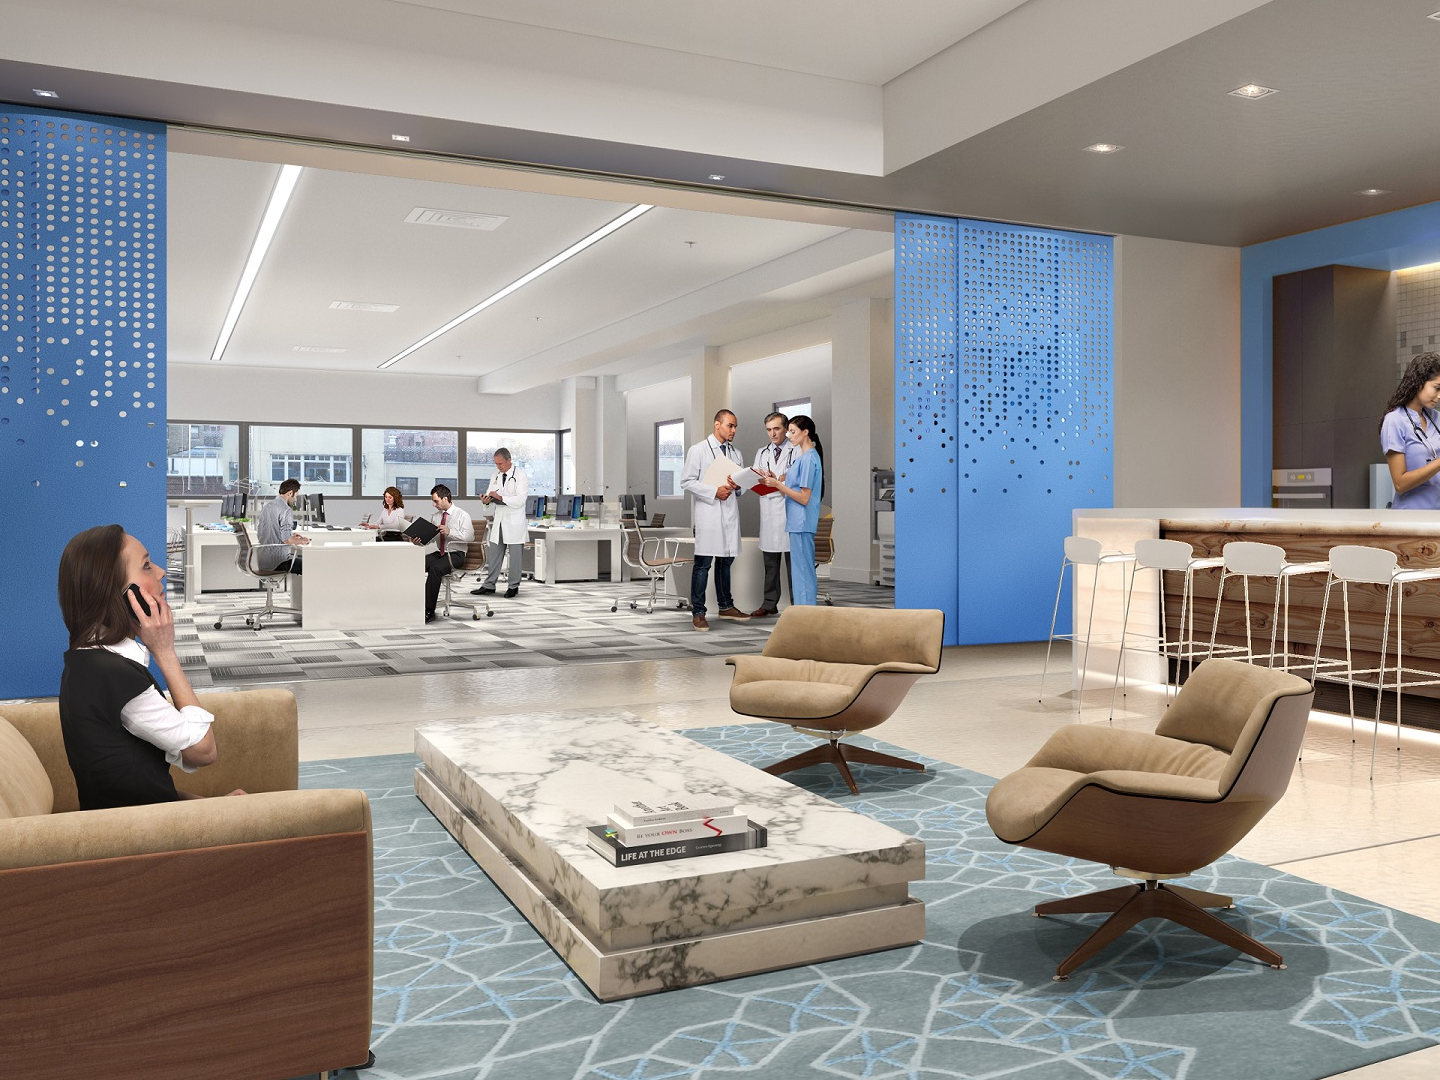 Wexler Healthcare Properties At Corcoran Launches Leasing At Park Sixty Medical Building At 110 East 60th Street - October 10, 2016 | citybizlistFirst New All-Medical Building on the Upper East Side in Decades …Read More